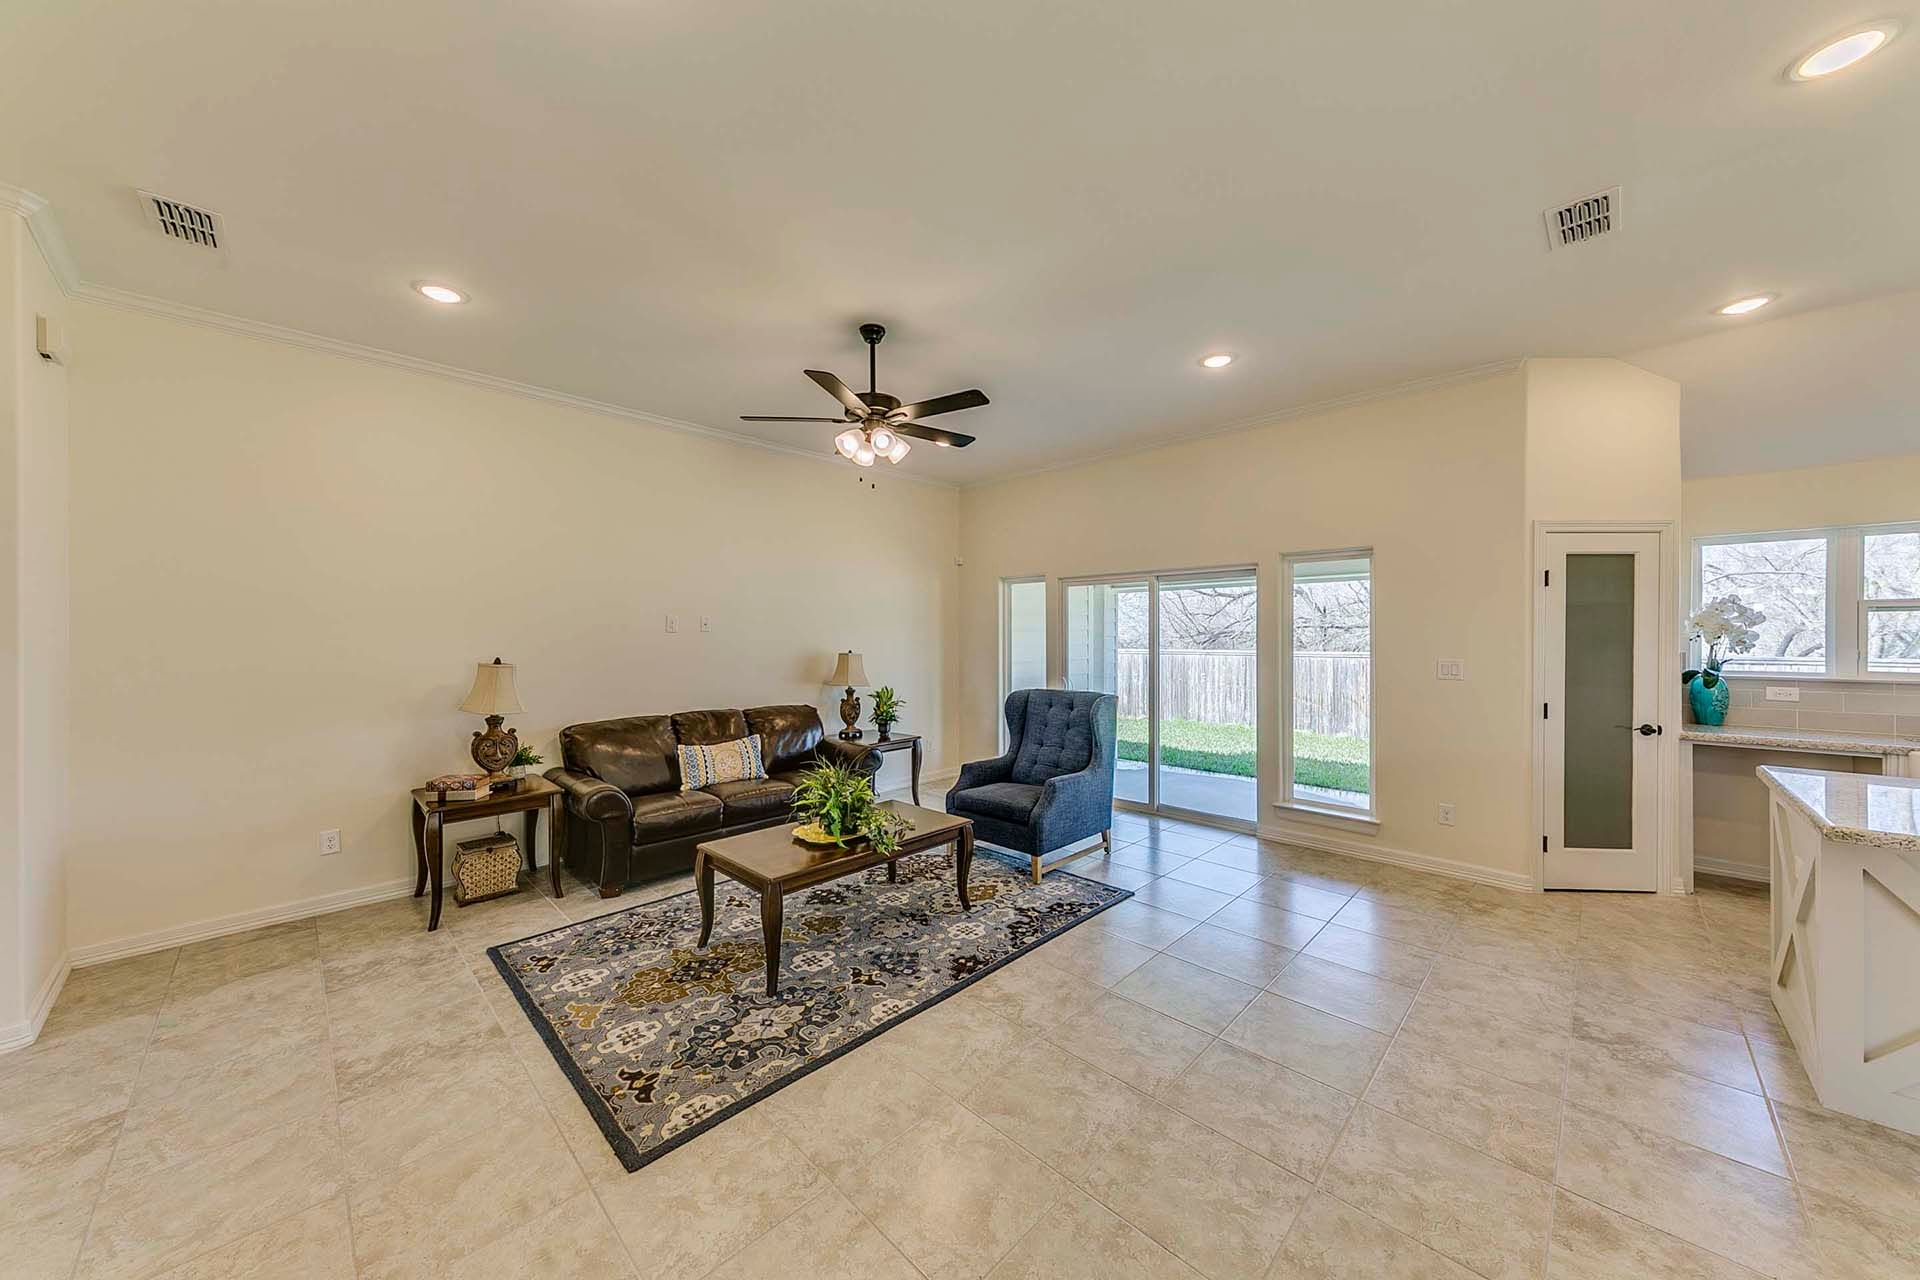 Living Area featured in the Barceledo II By WestWind Homes in Rio Grande Valley, TX